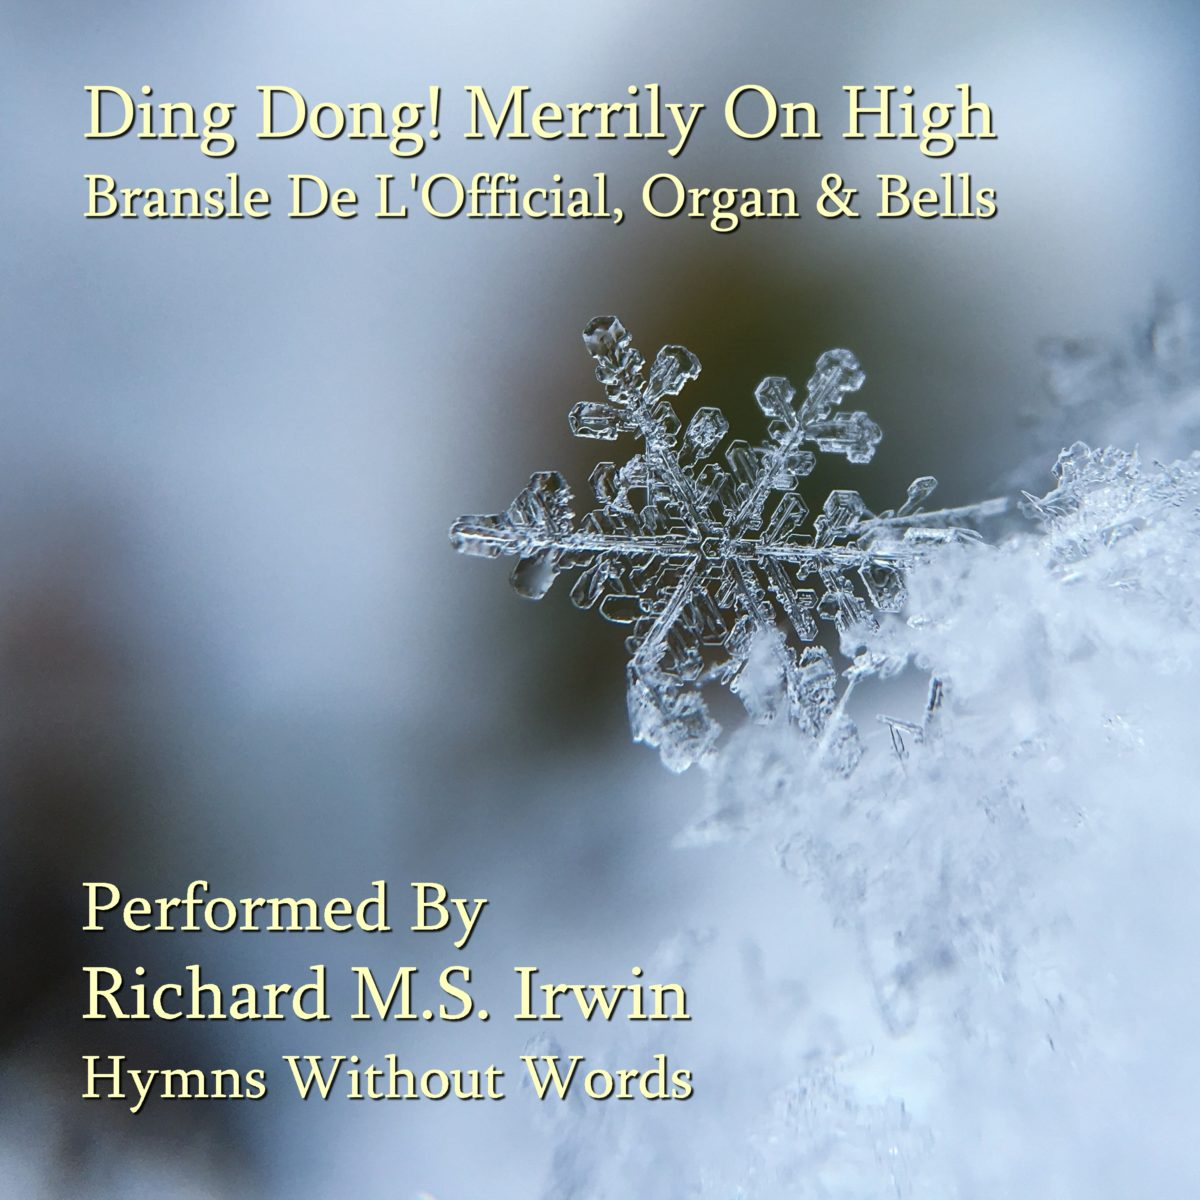 Ding Dong! Merrily On High (Bransle De L'Official – 2 Verses) – Organ & Bells